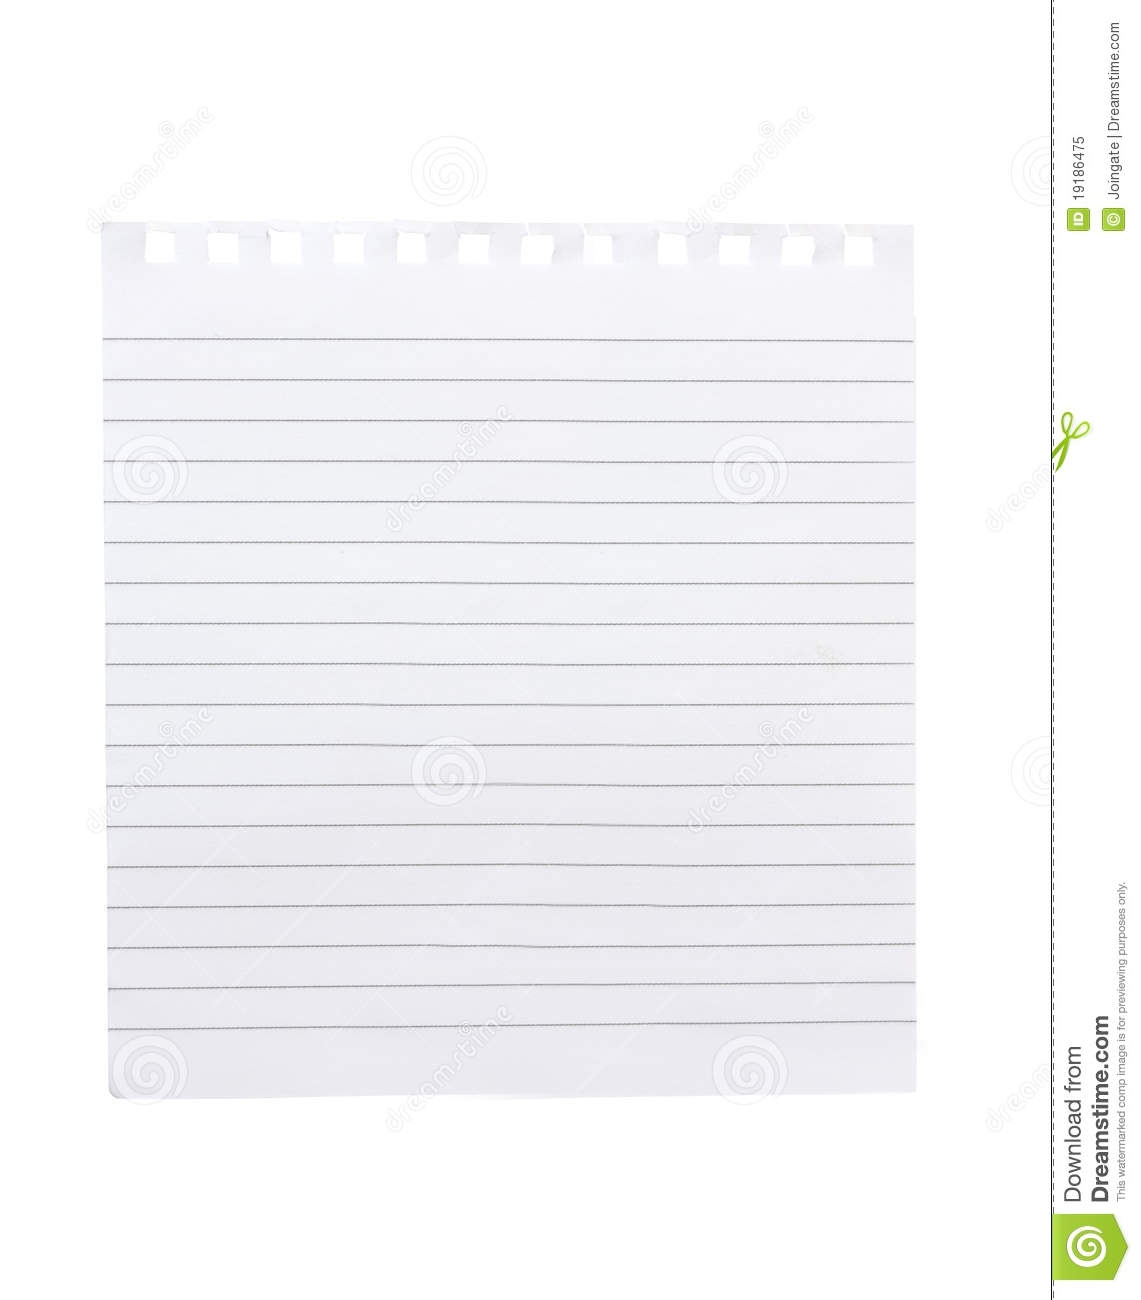 Notebook clipart piece paper Com of paper Paper notebook